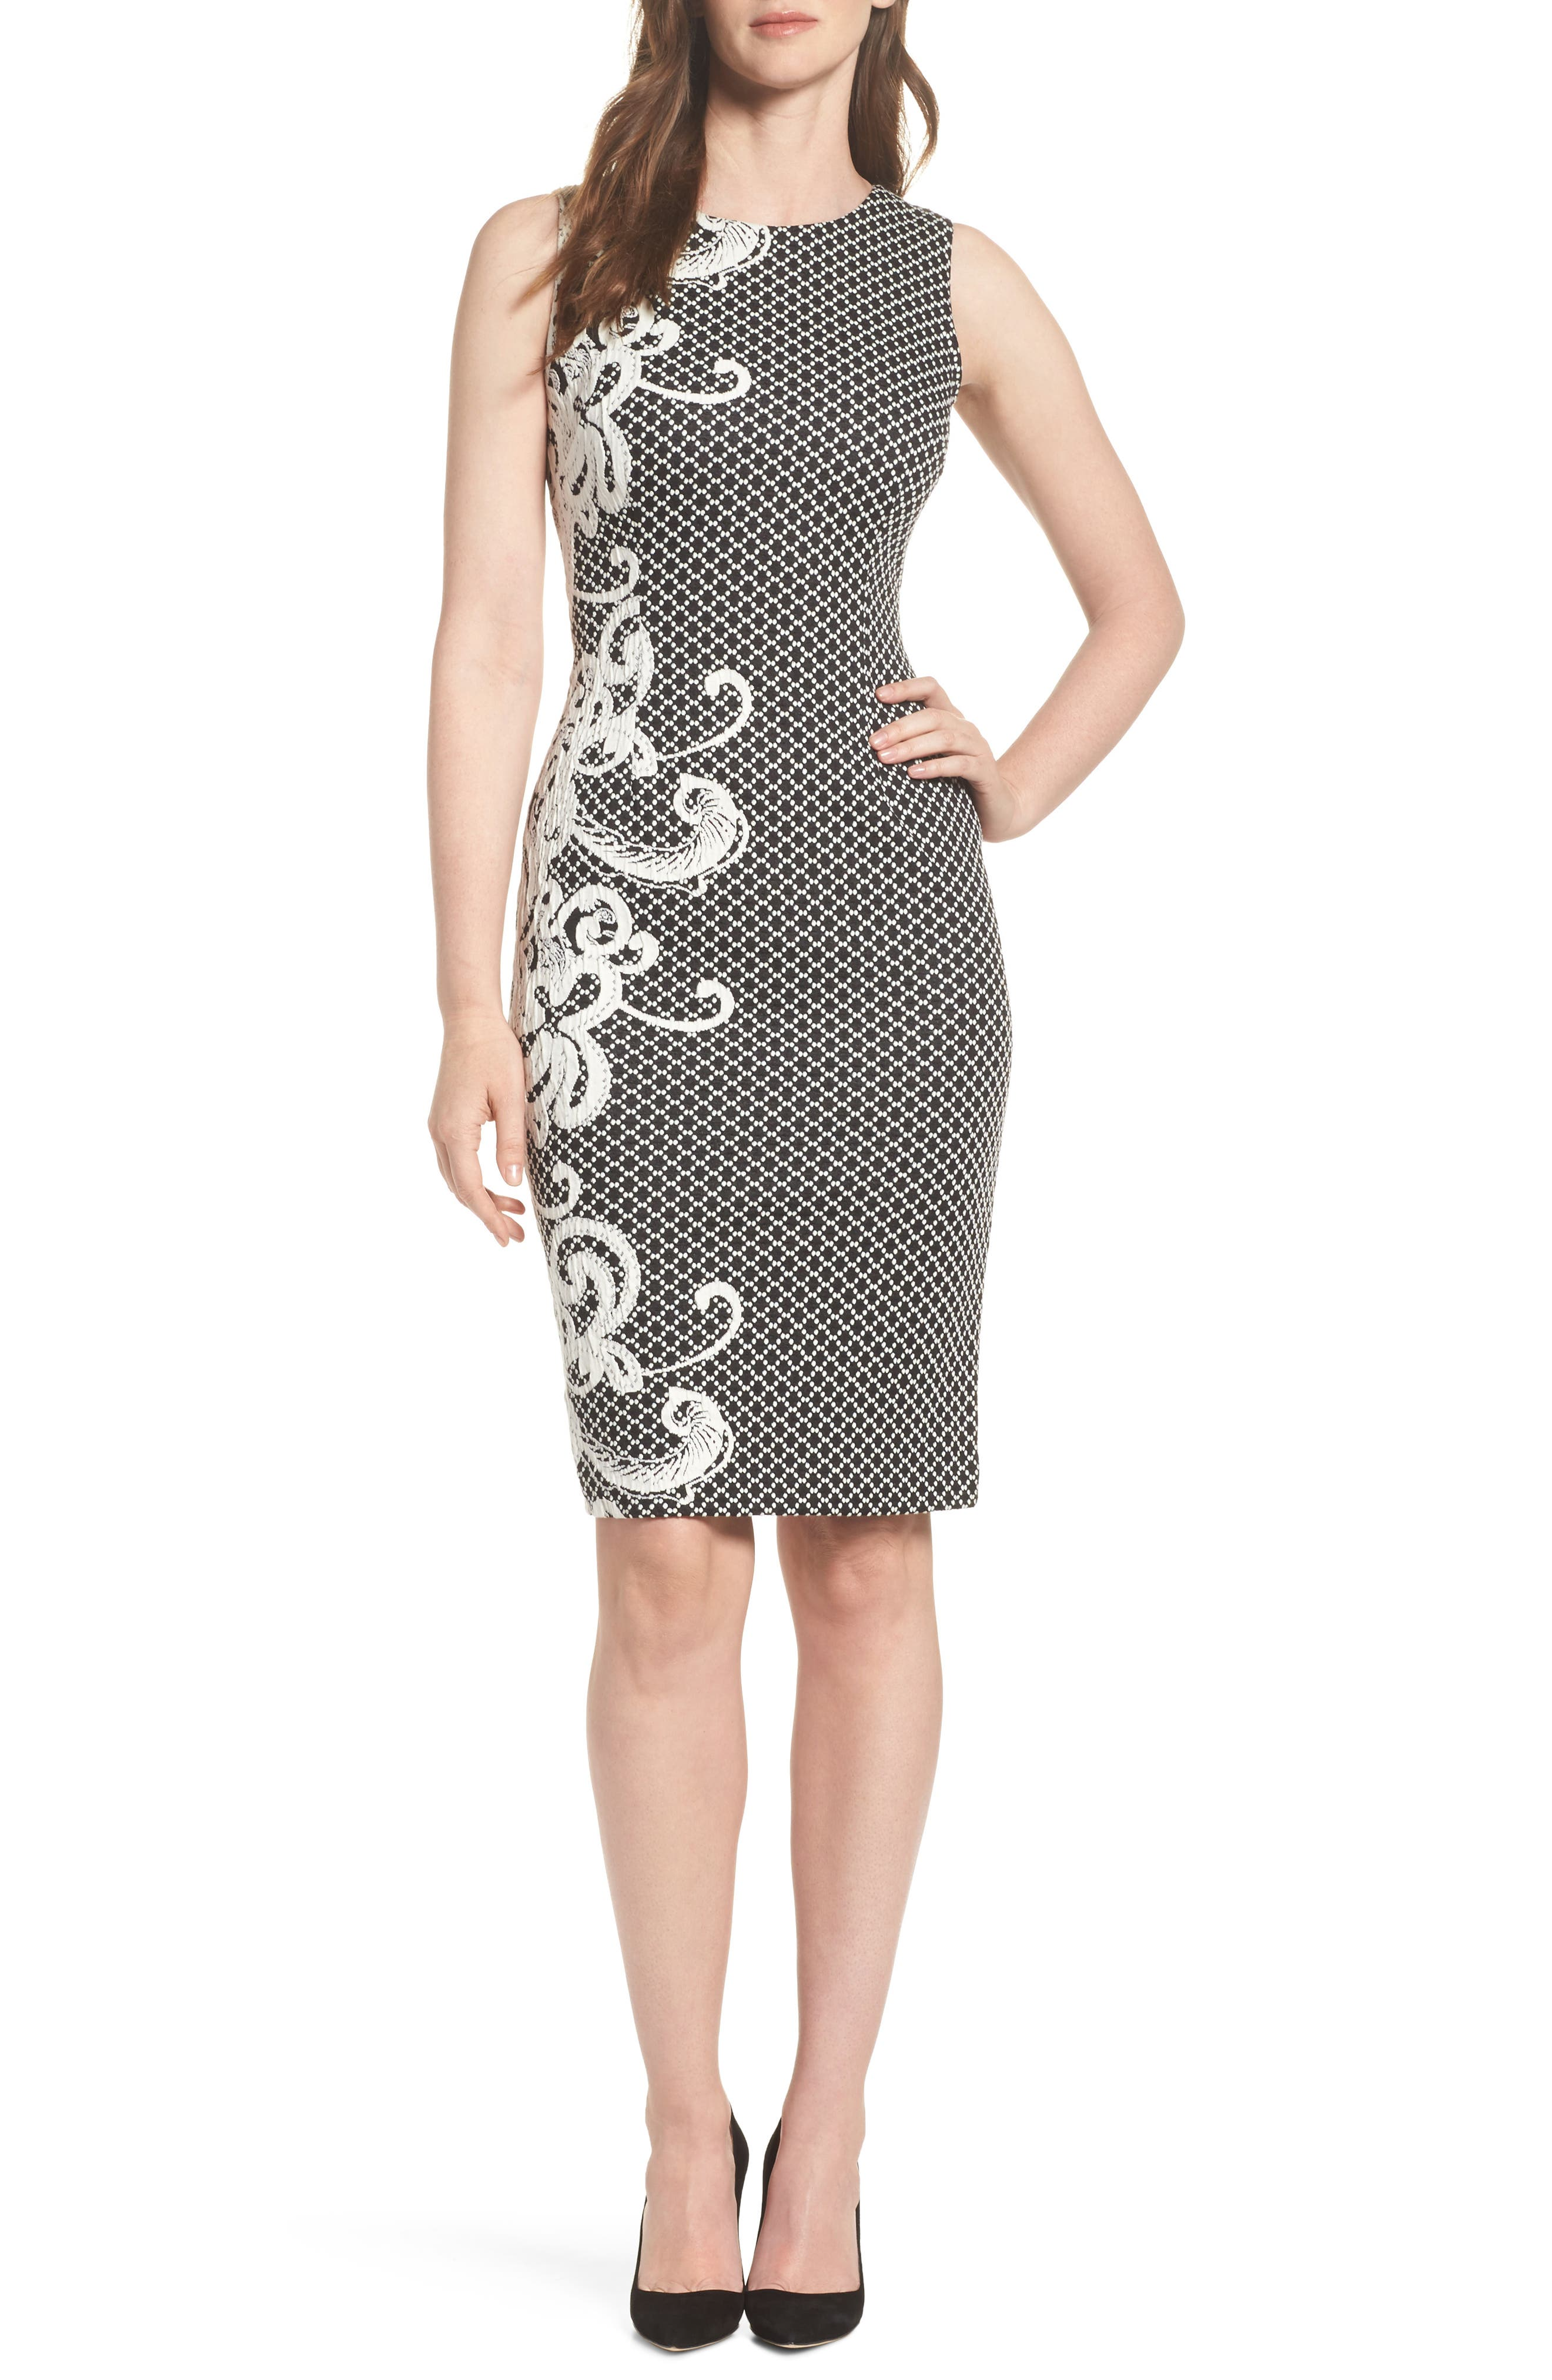 Scroll Border Knit Sheath,                         Main,                         color, Black/ Ivory